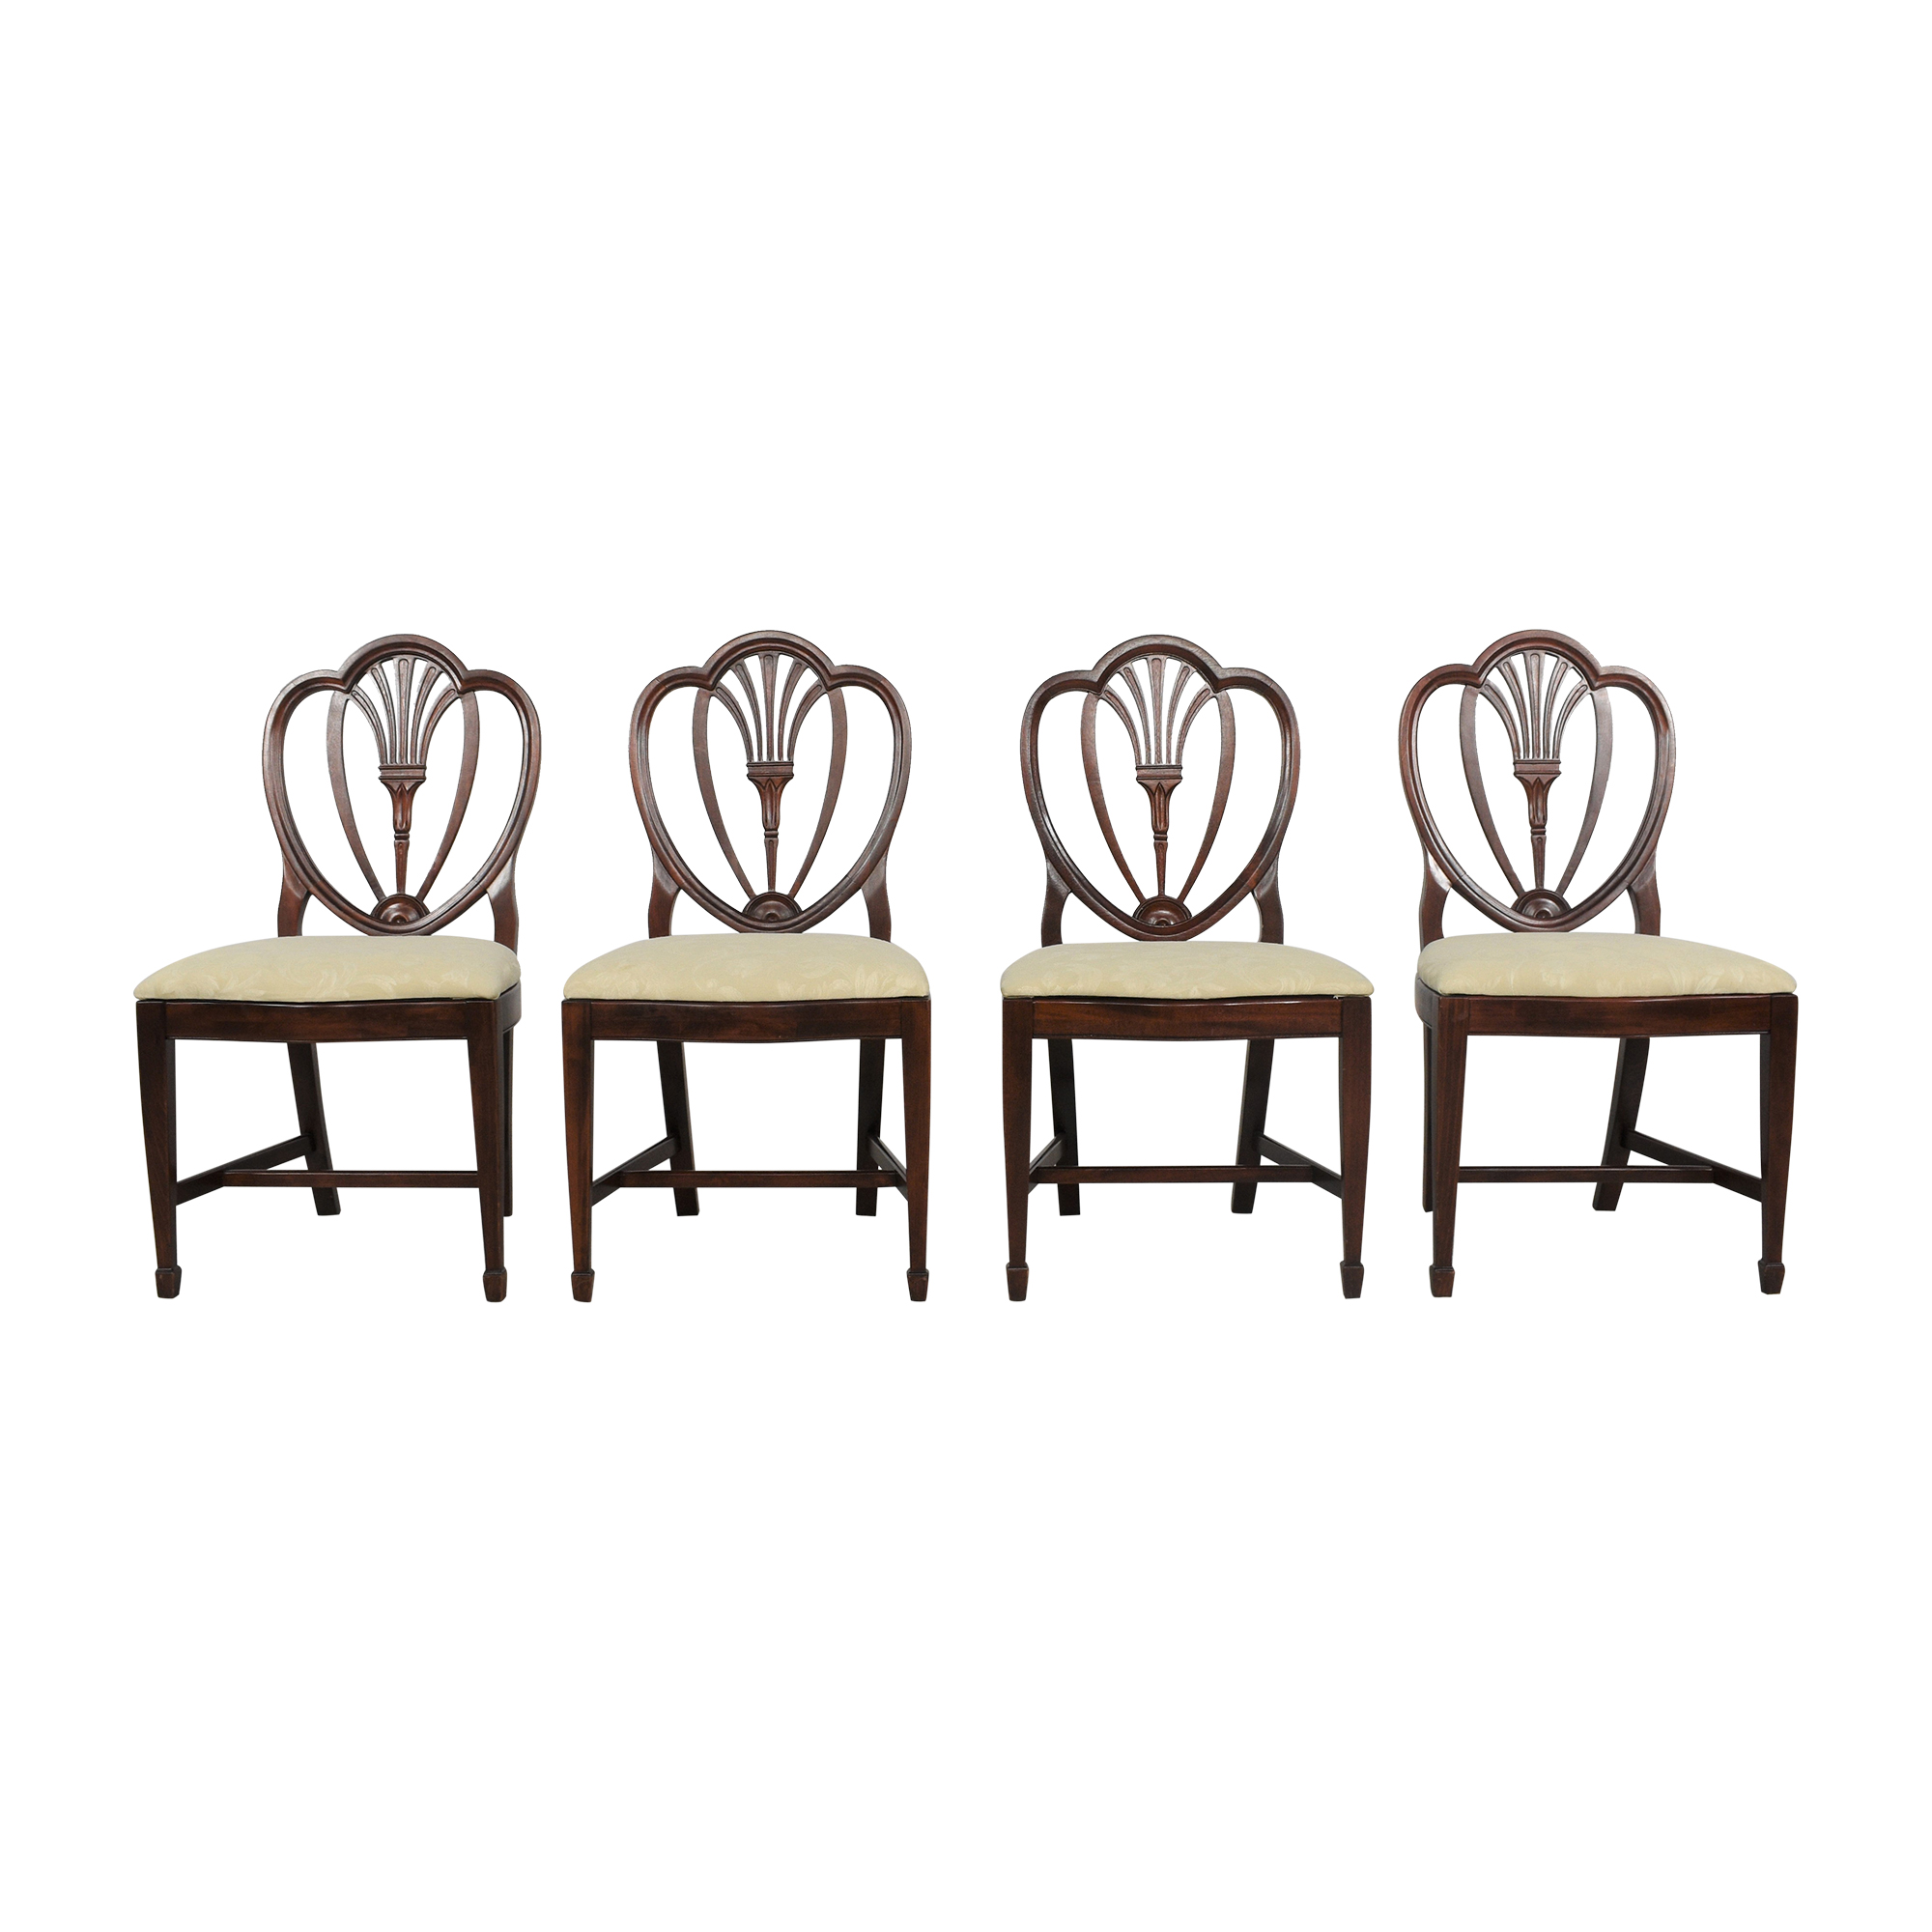 J.B. Van Sciver Furniture J.B. Van Sciver Furniture Dining Chairs Brown